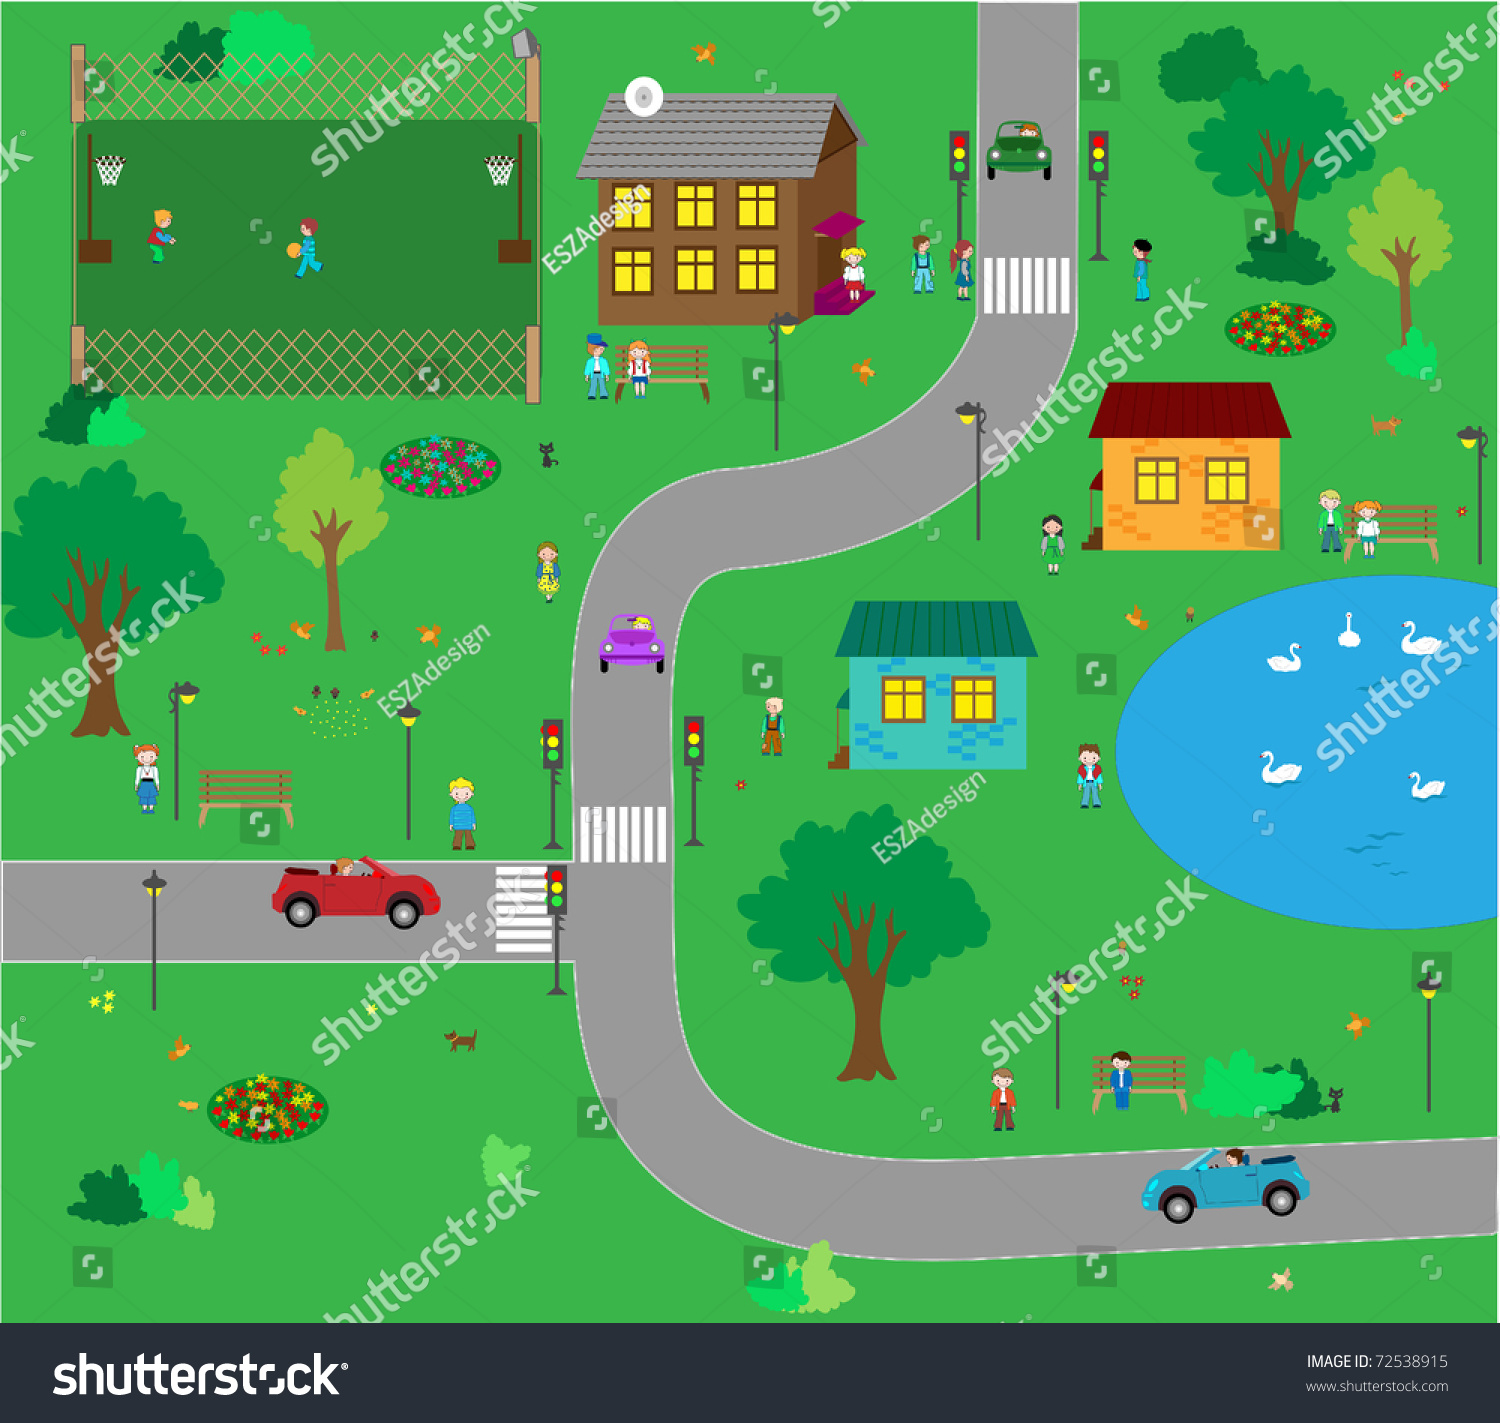 Kids Town Cartoon Stock Vector Shutterstock - Town map for kids